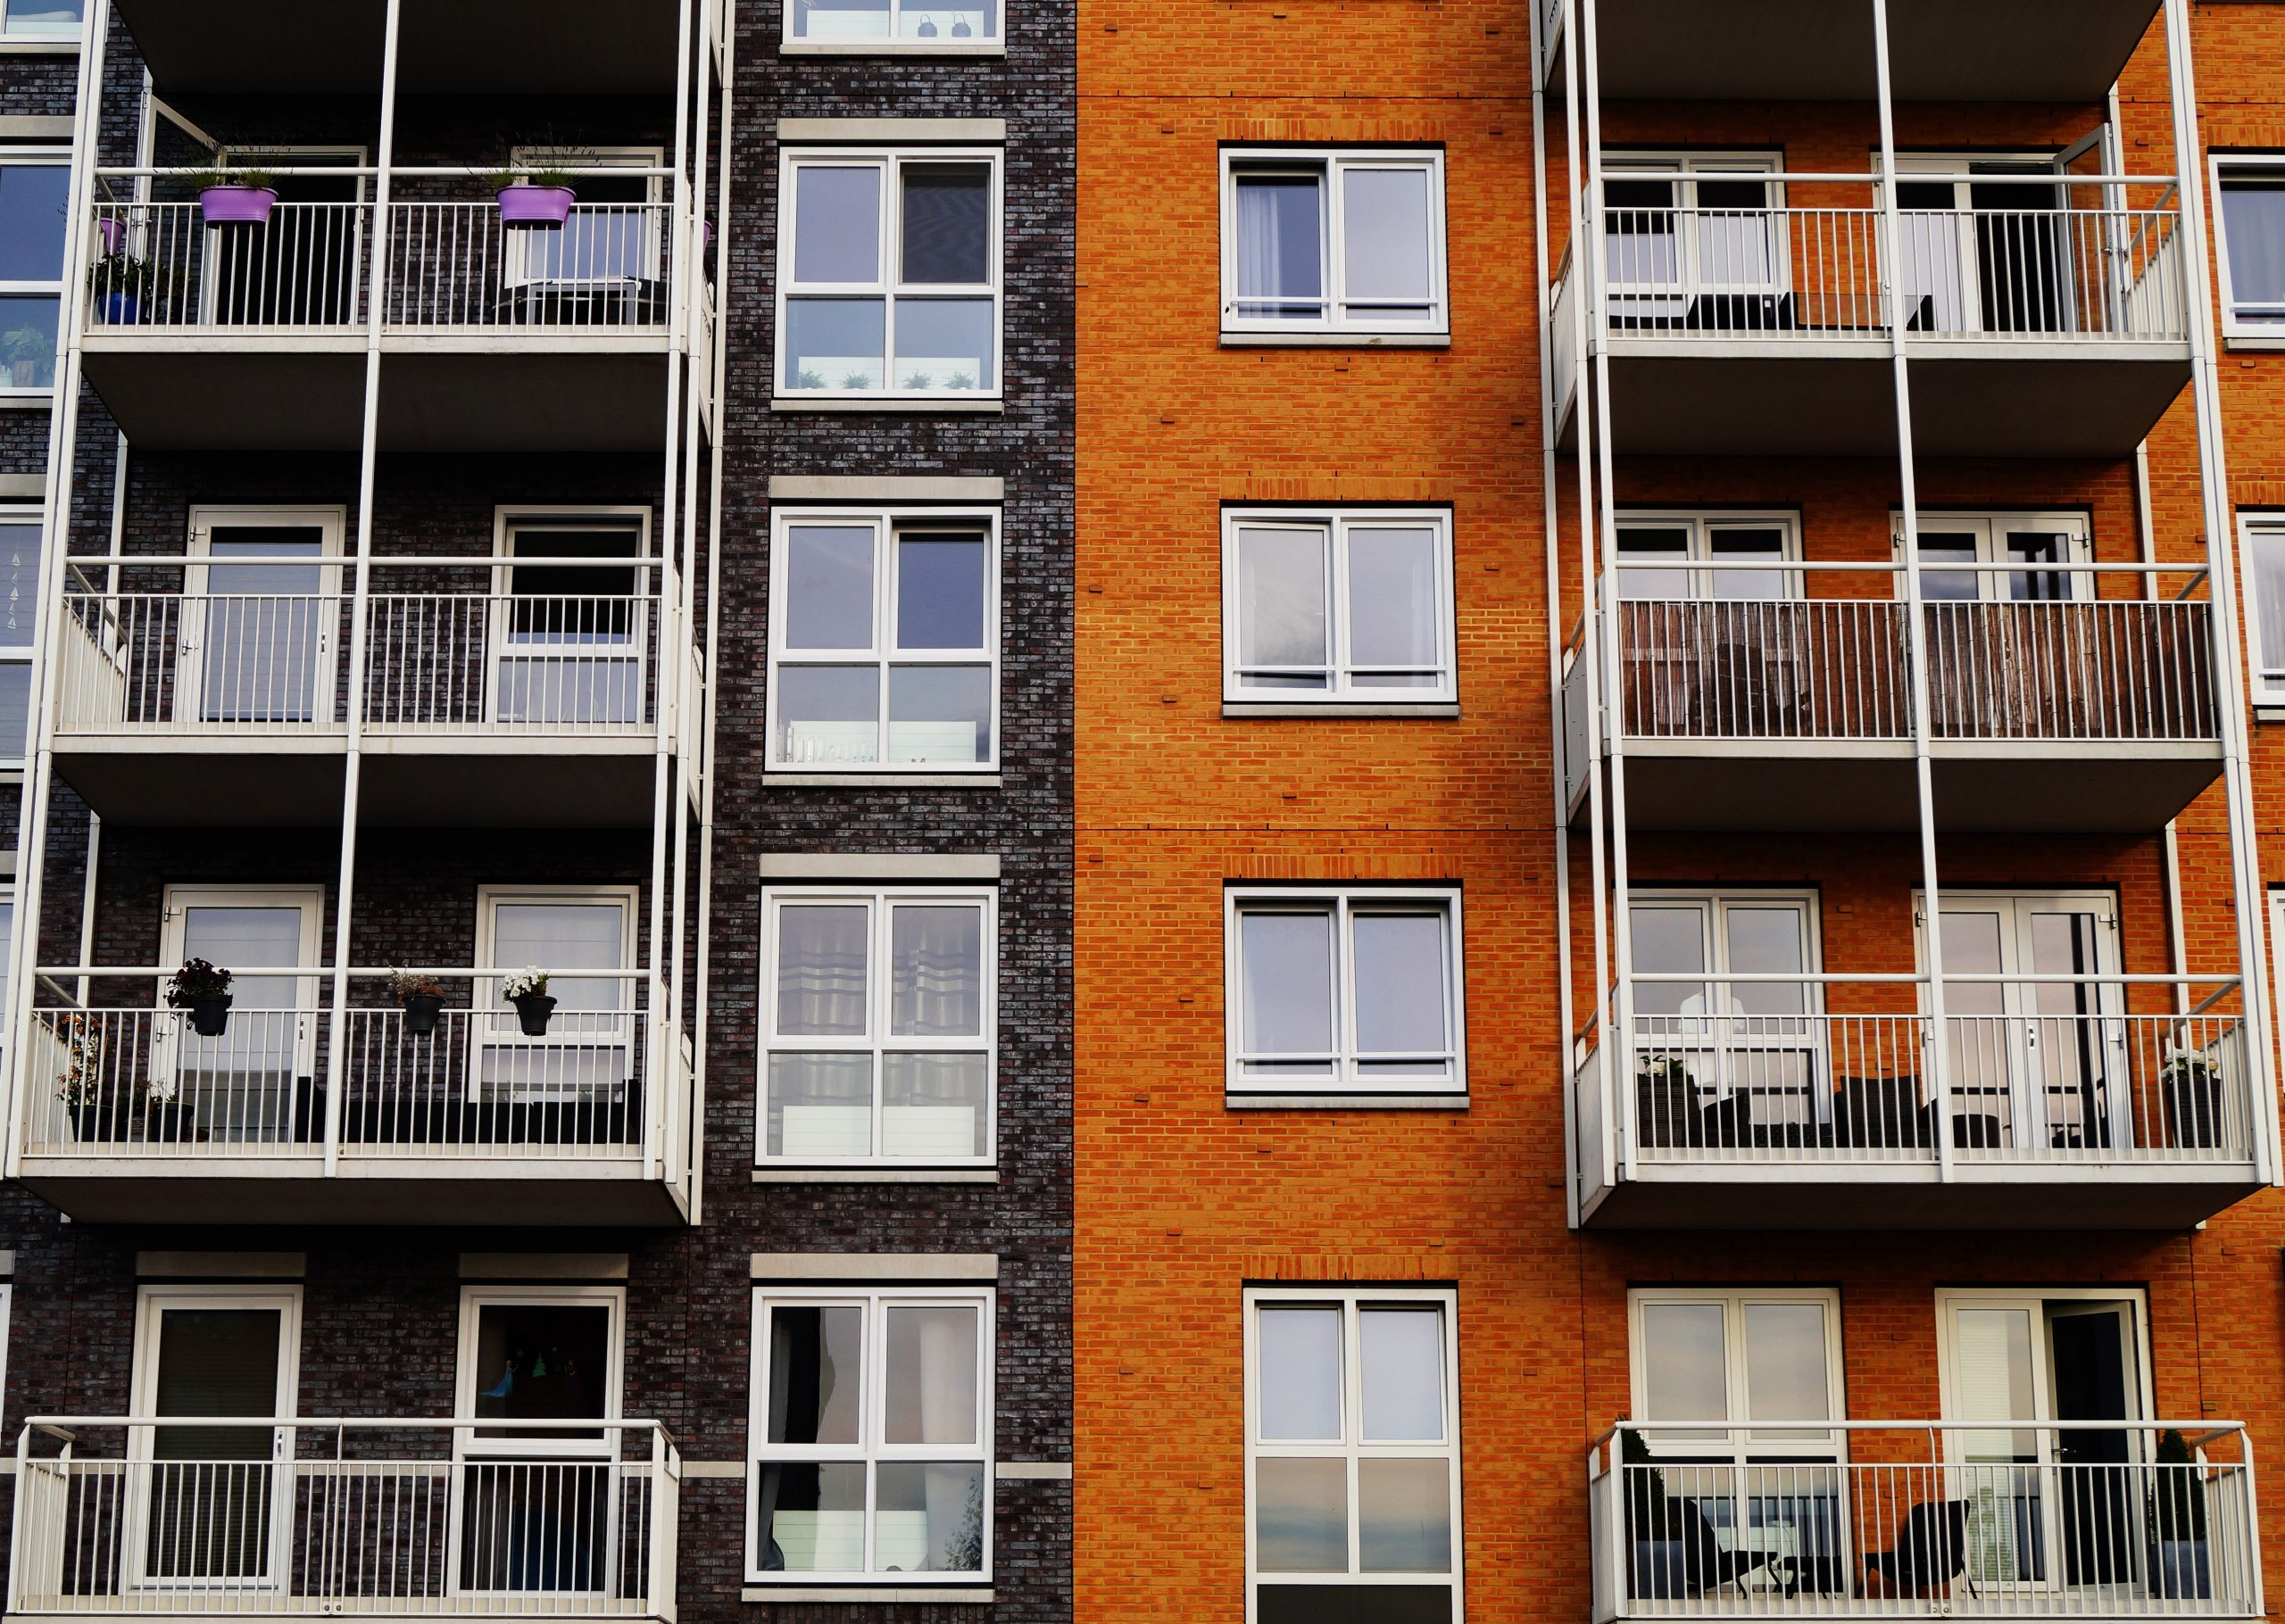 two toned apartment building with balconies